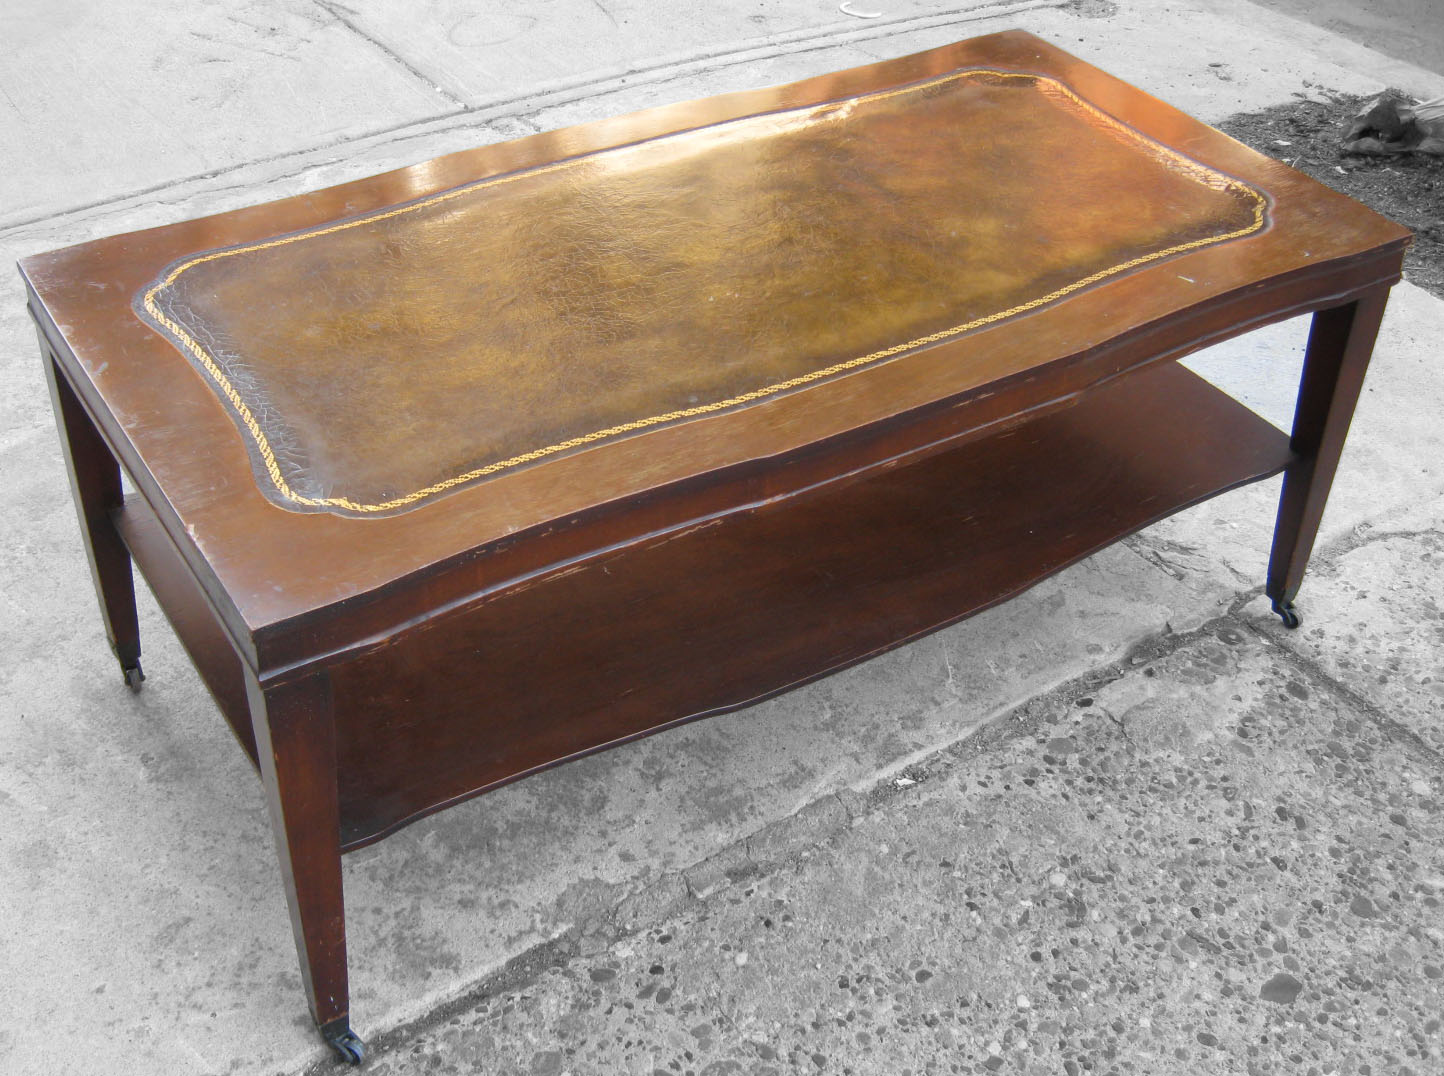 Uhuru furniture collectibles leather top coffee table sold Coffee table with leather top